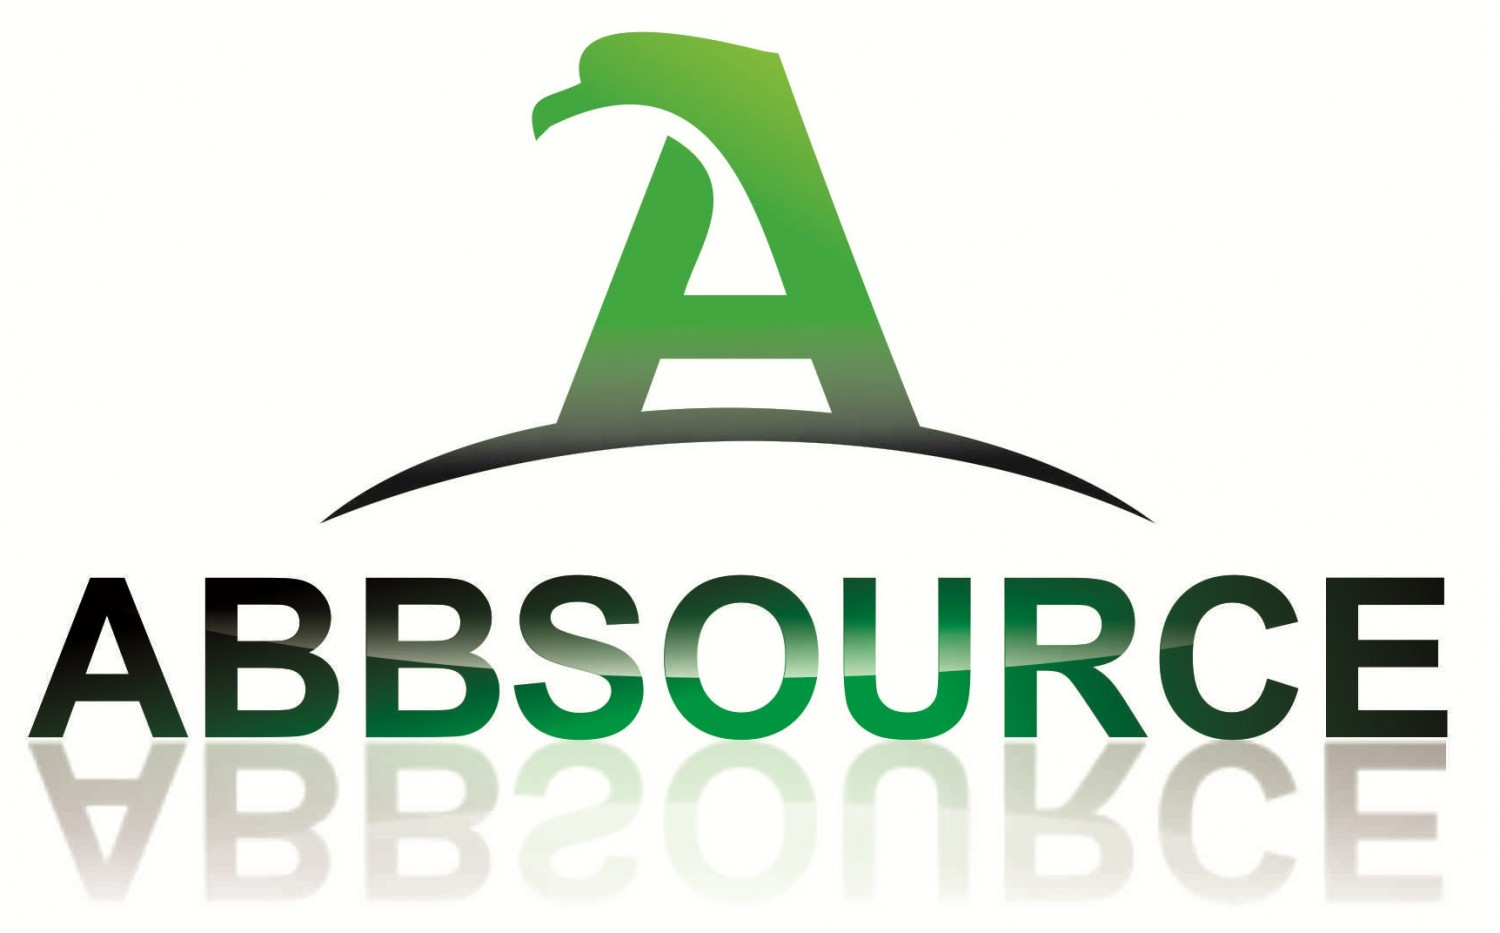 ABBSOURCE Color